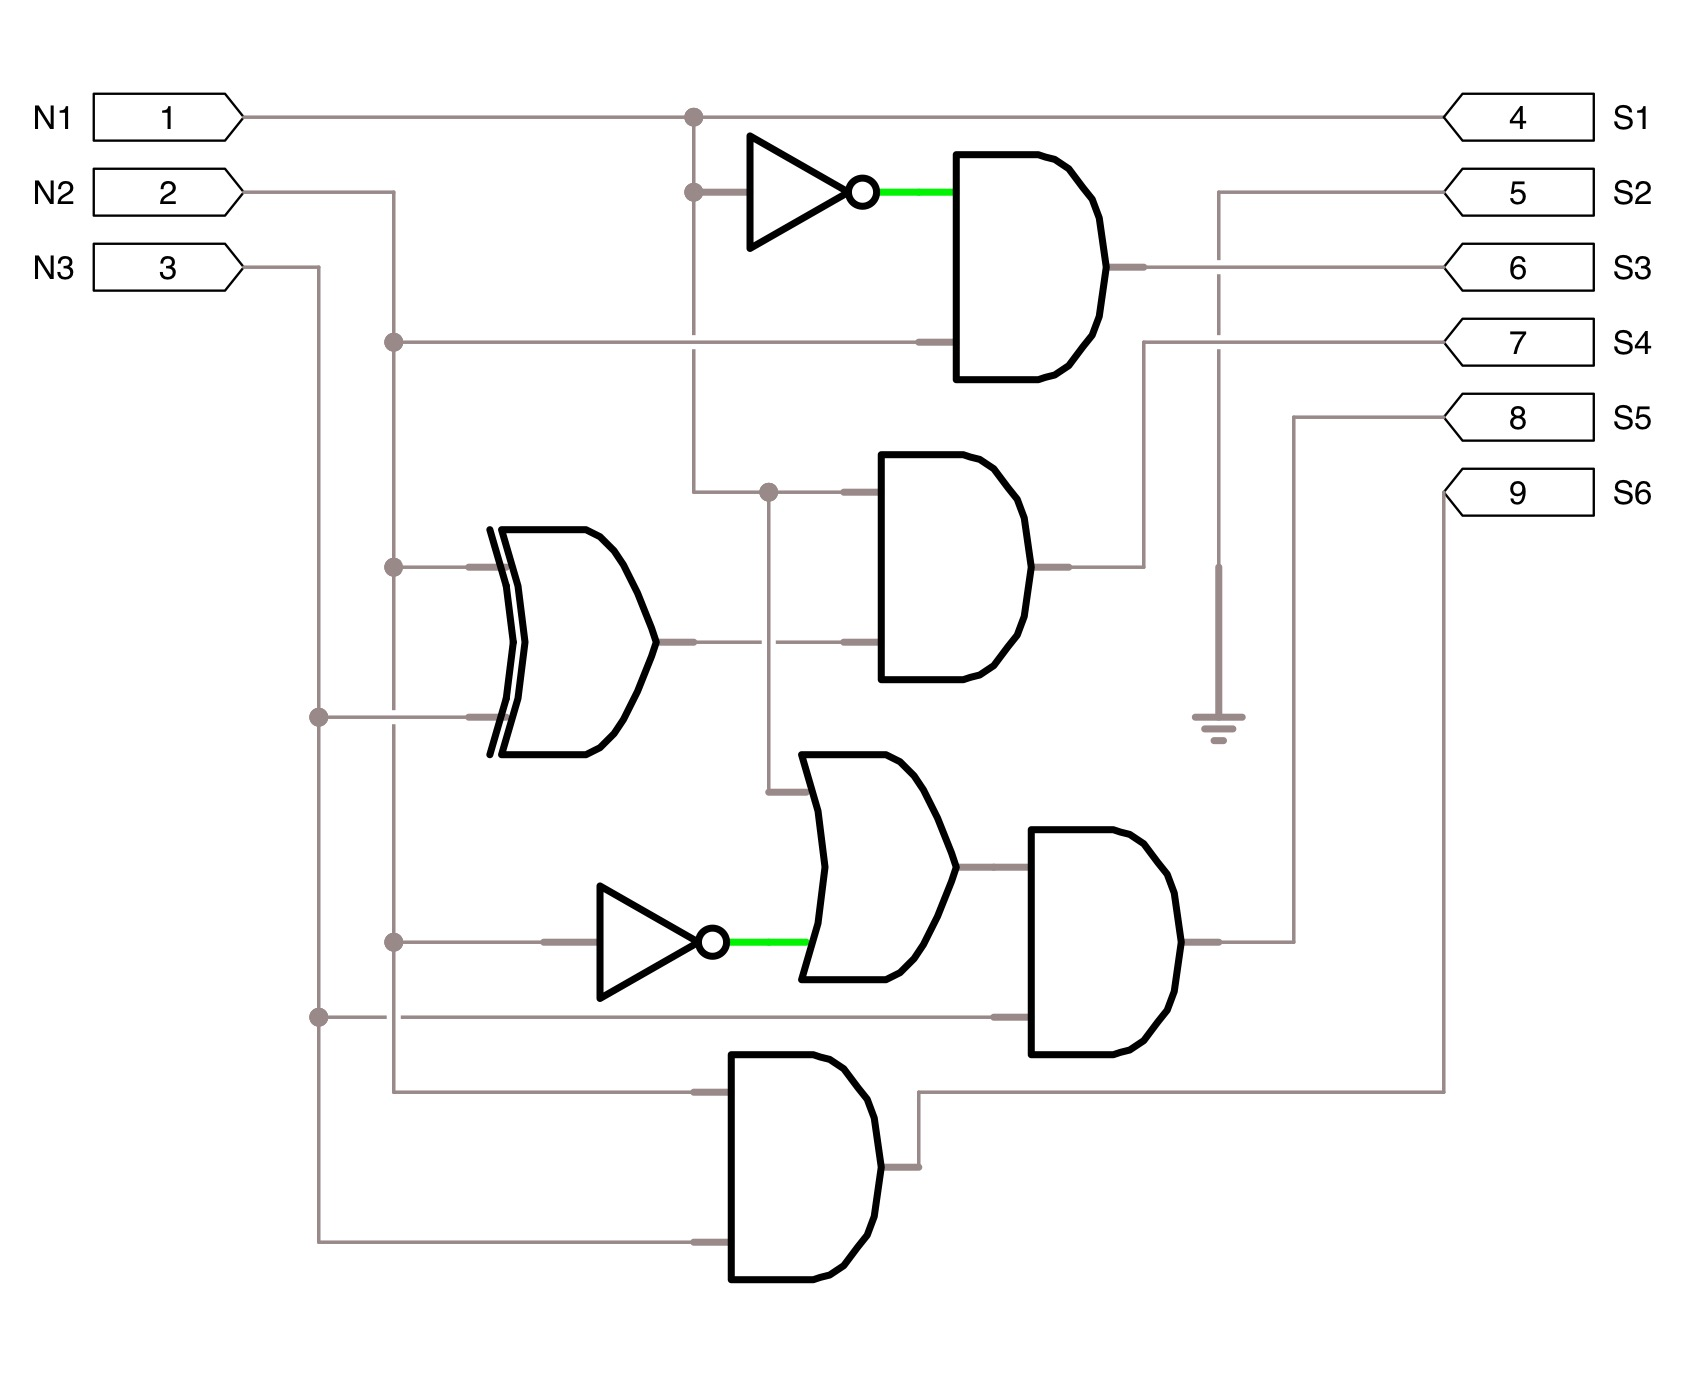 hight resolution of 8 bit adder logic diagram wiring diagram centre 8 bit adder logic diagram